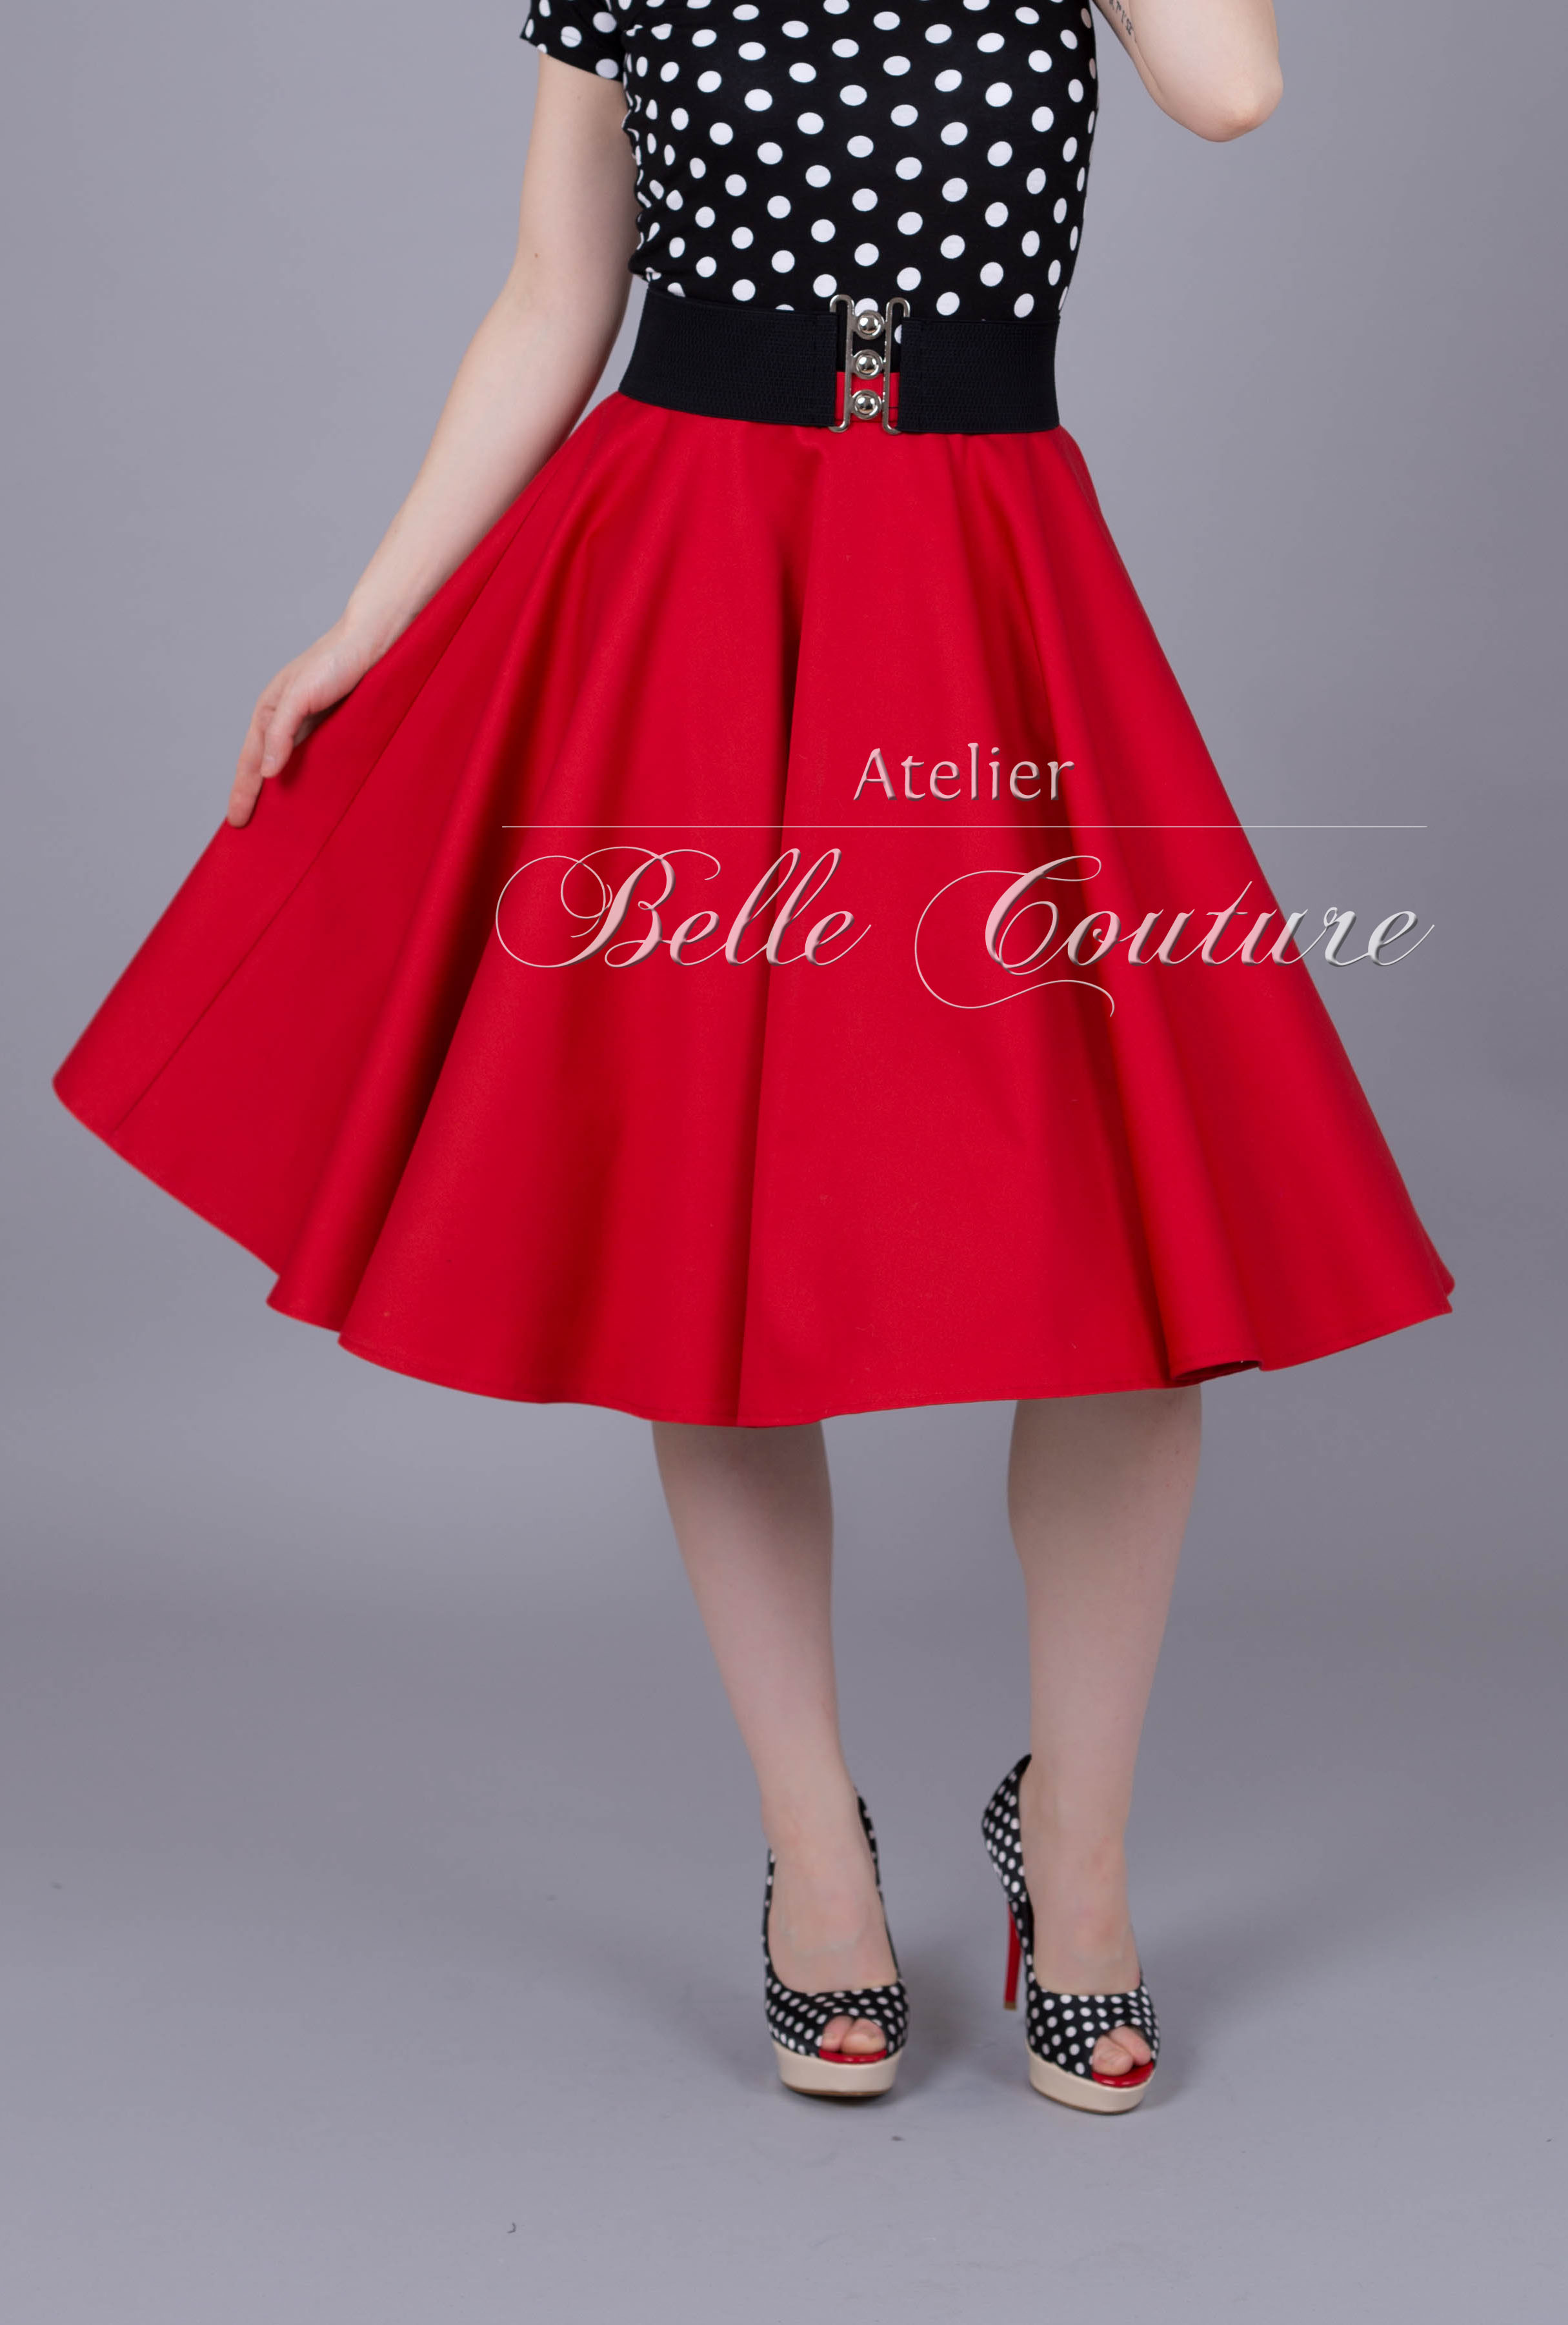 7cfe299712a7ae Atelier Belle Couture | 50er jahre Tellerrock